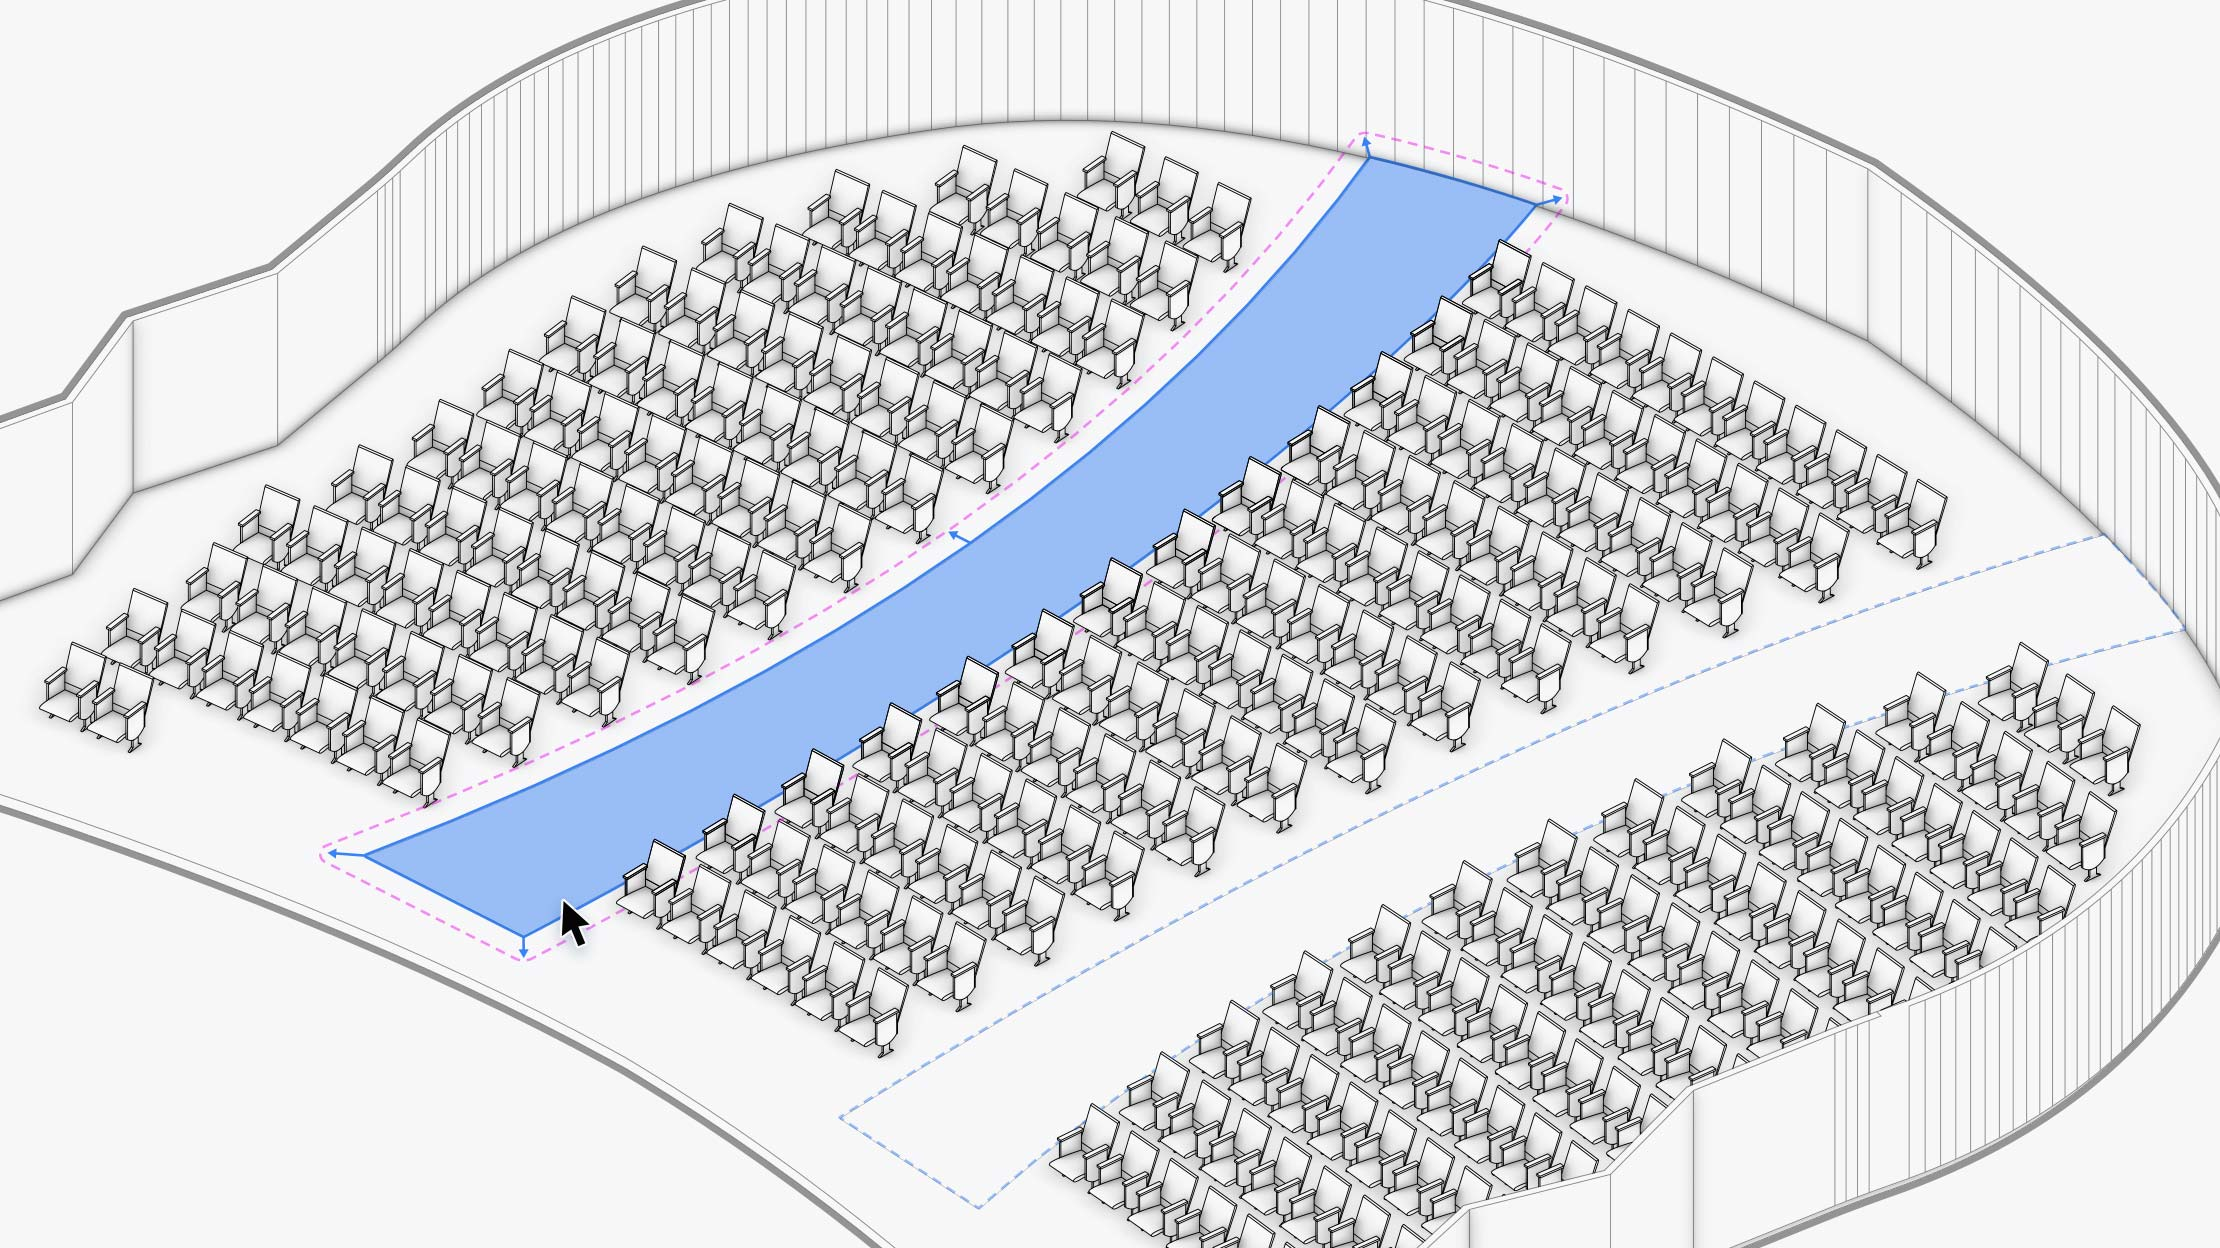 Detailed Seating Sections